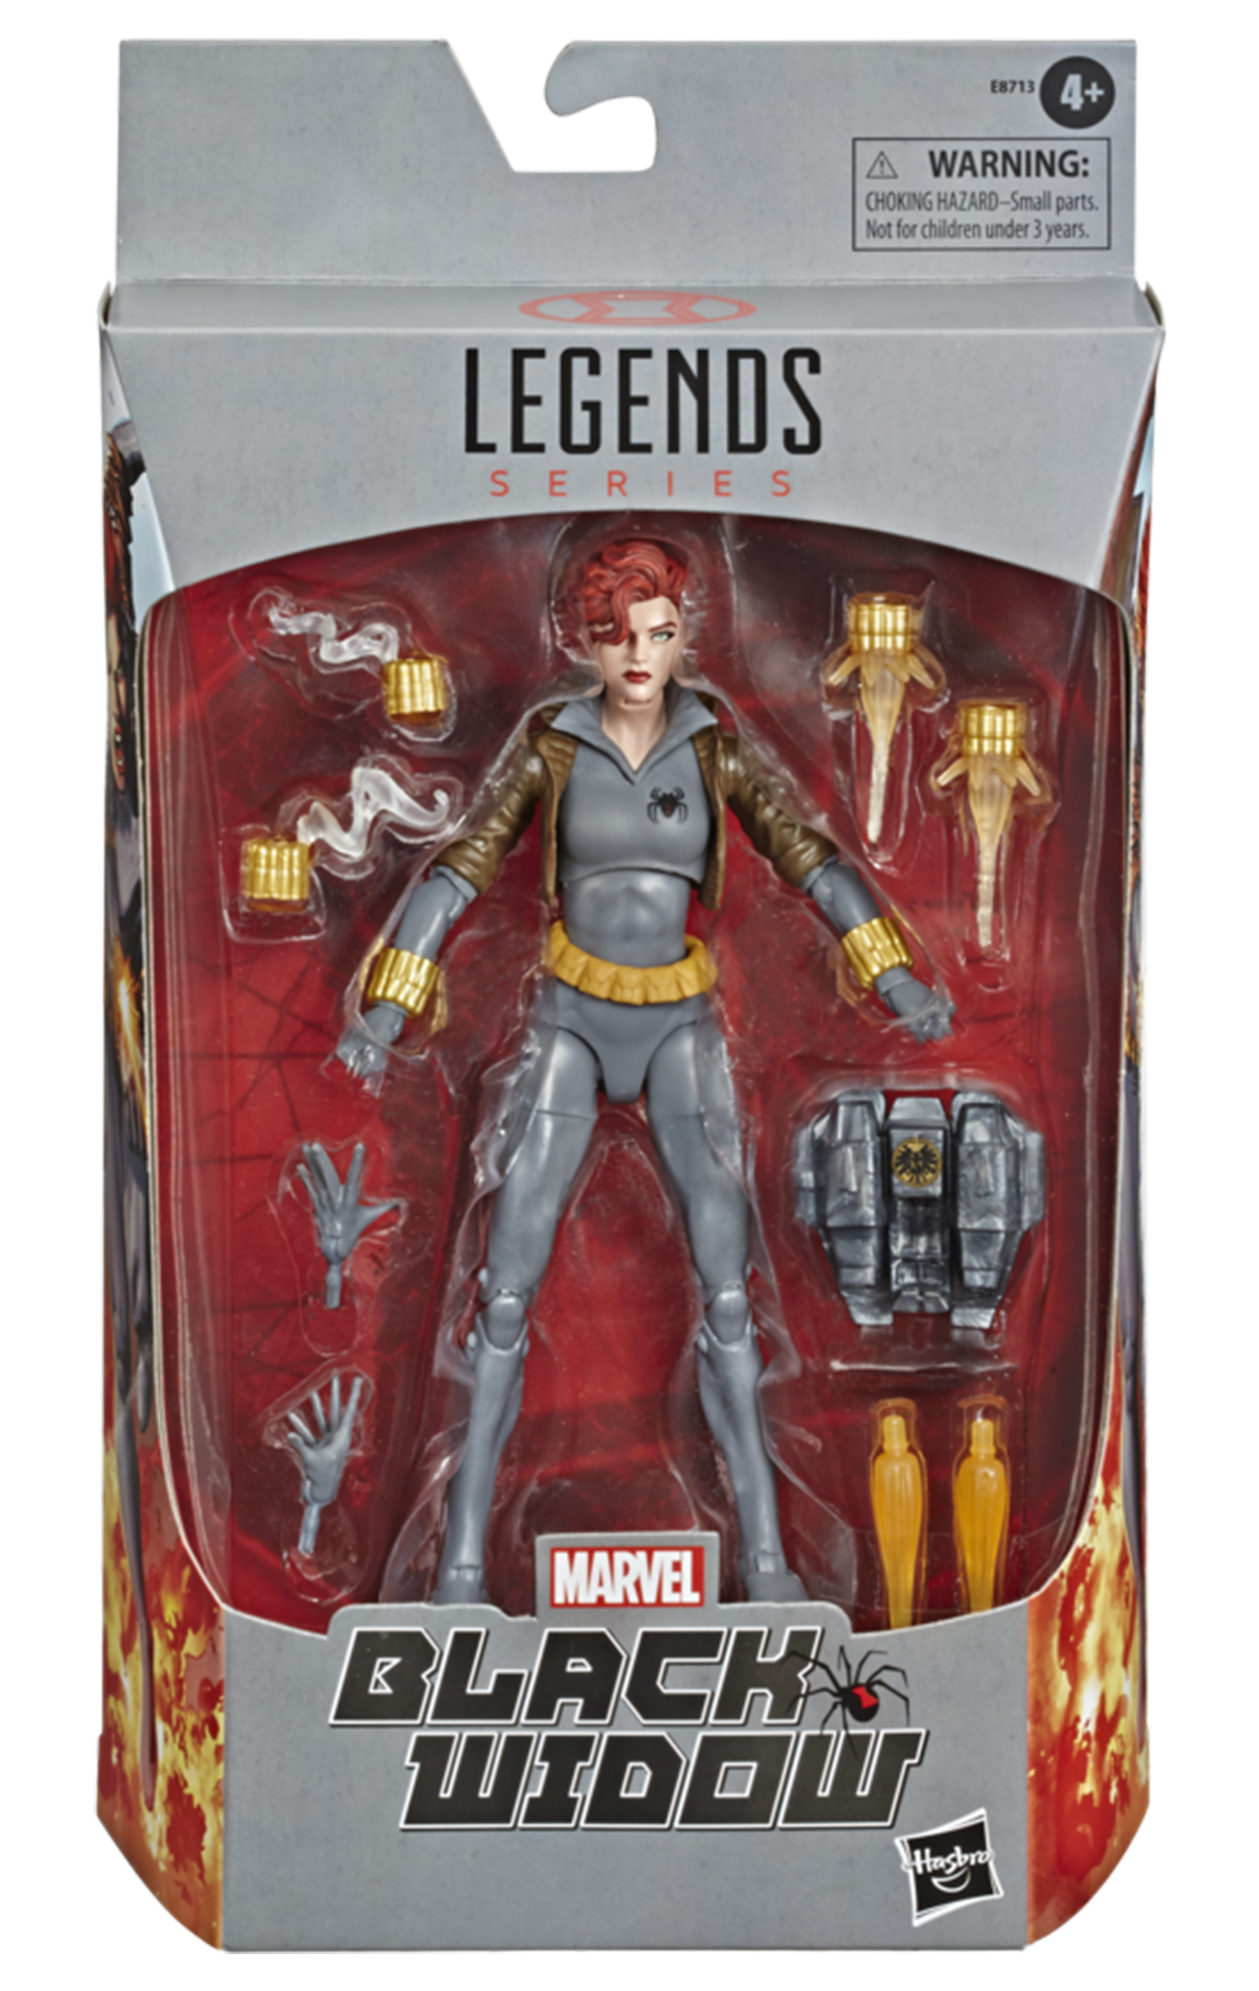 Exclusive Marvel Legends Black Widow Grey White Costume Comic Figures Marvel Toy News About this itemwe aim to show you accurate product information. marvel toy news